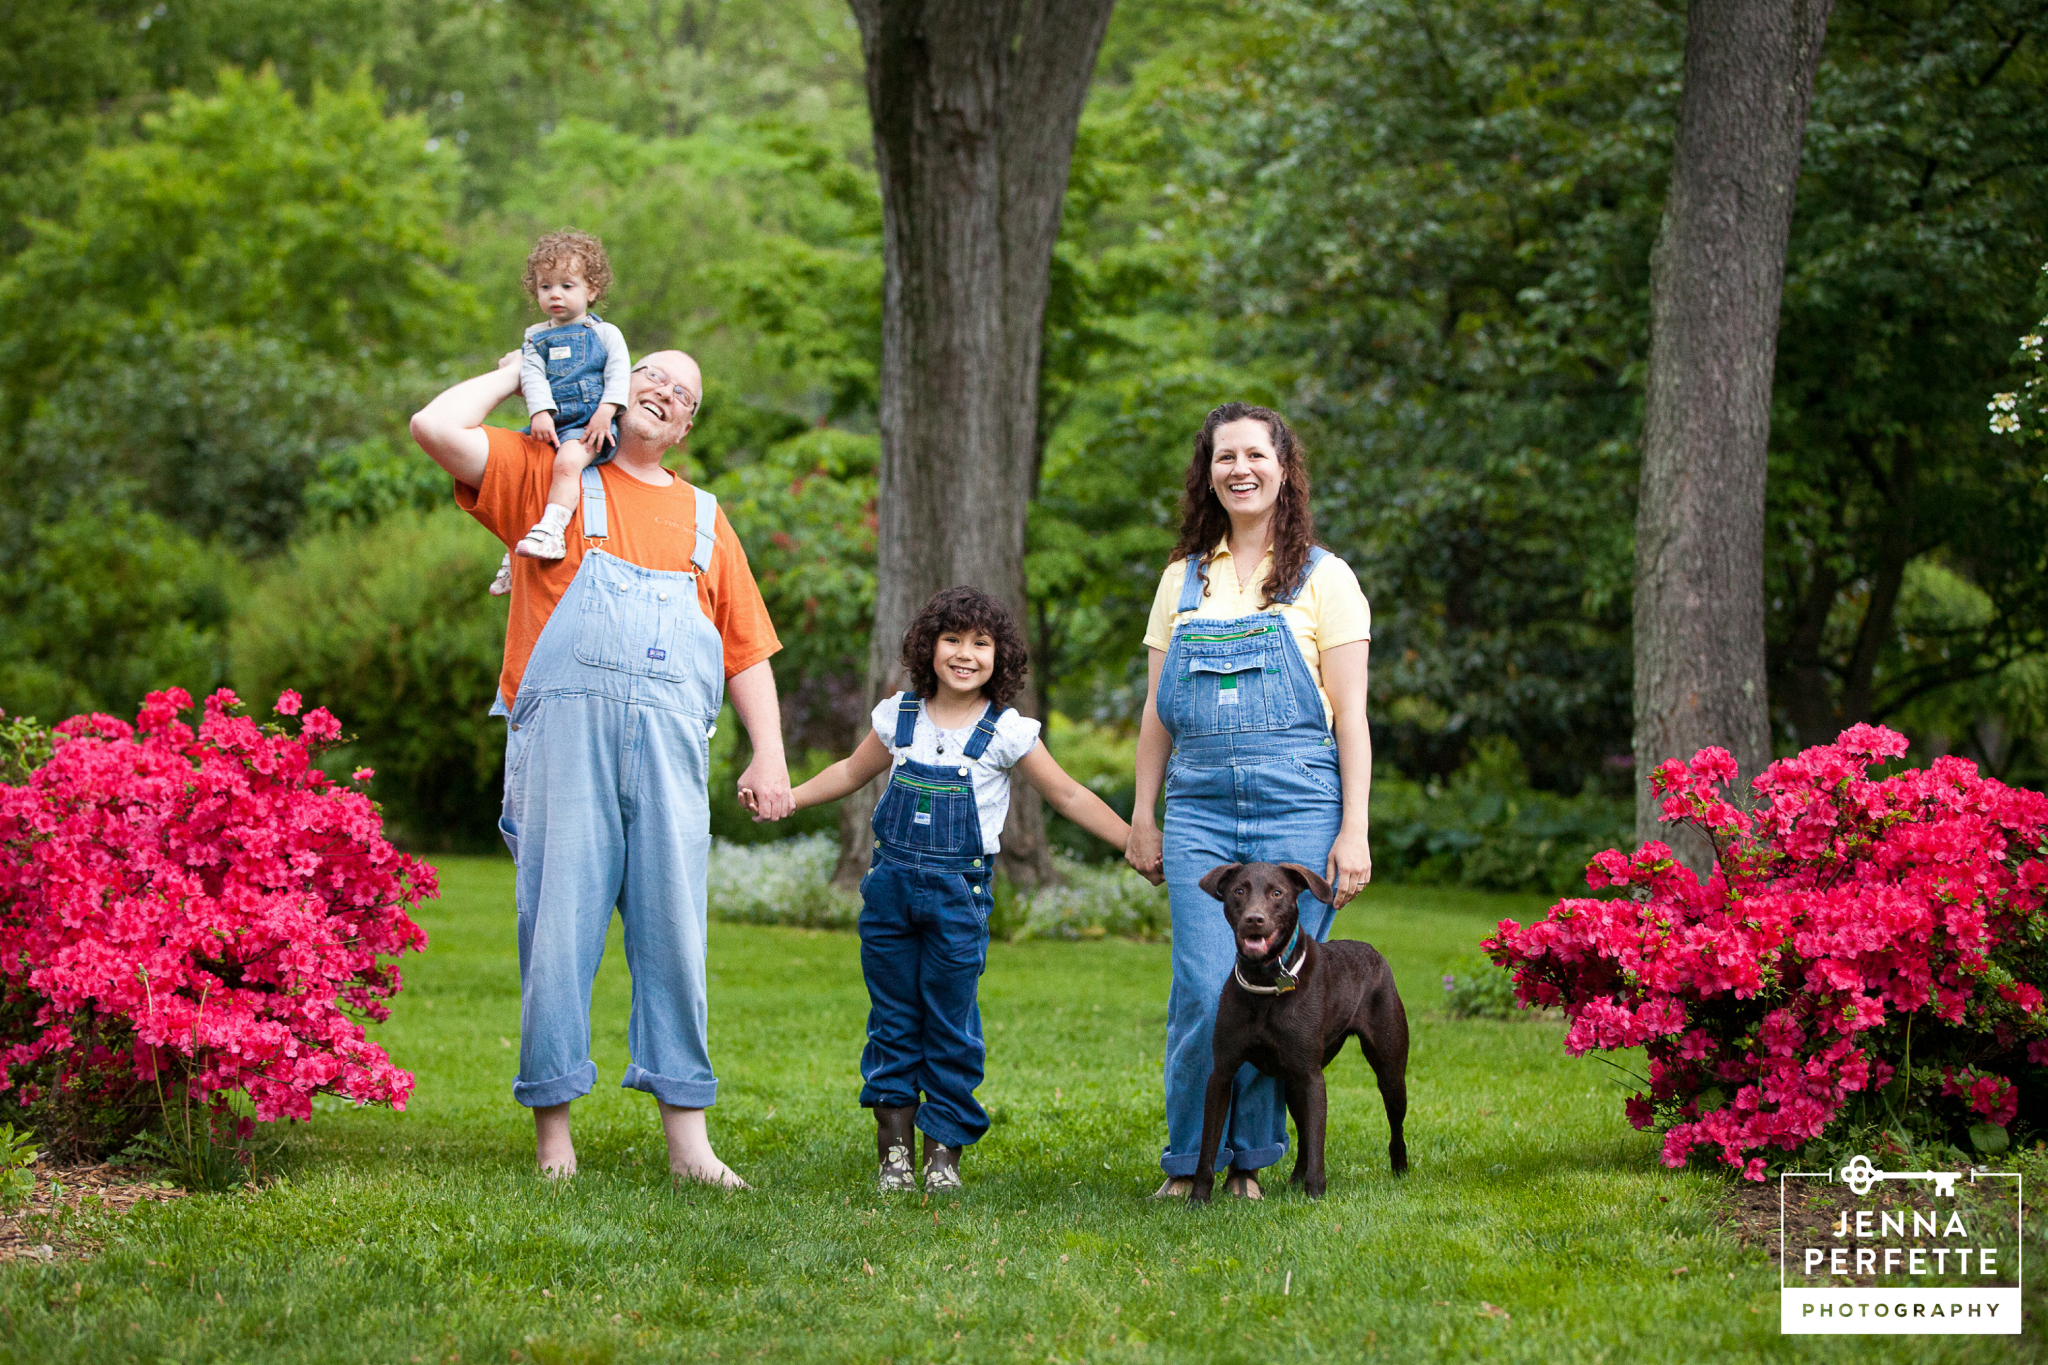 Where to Shoot your Family's Professional Photography Session in New Jersey